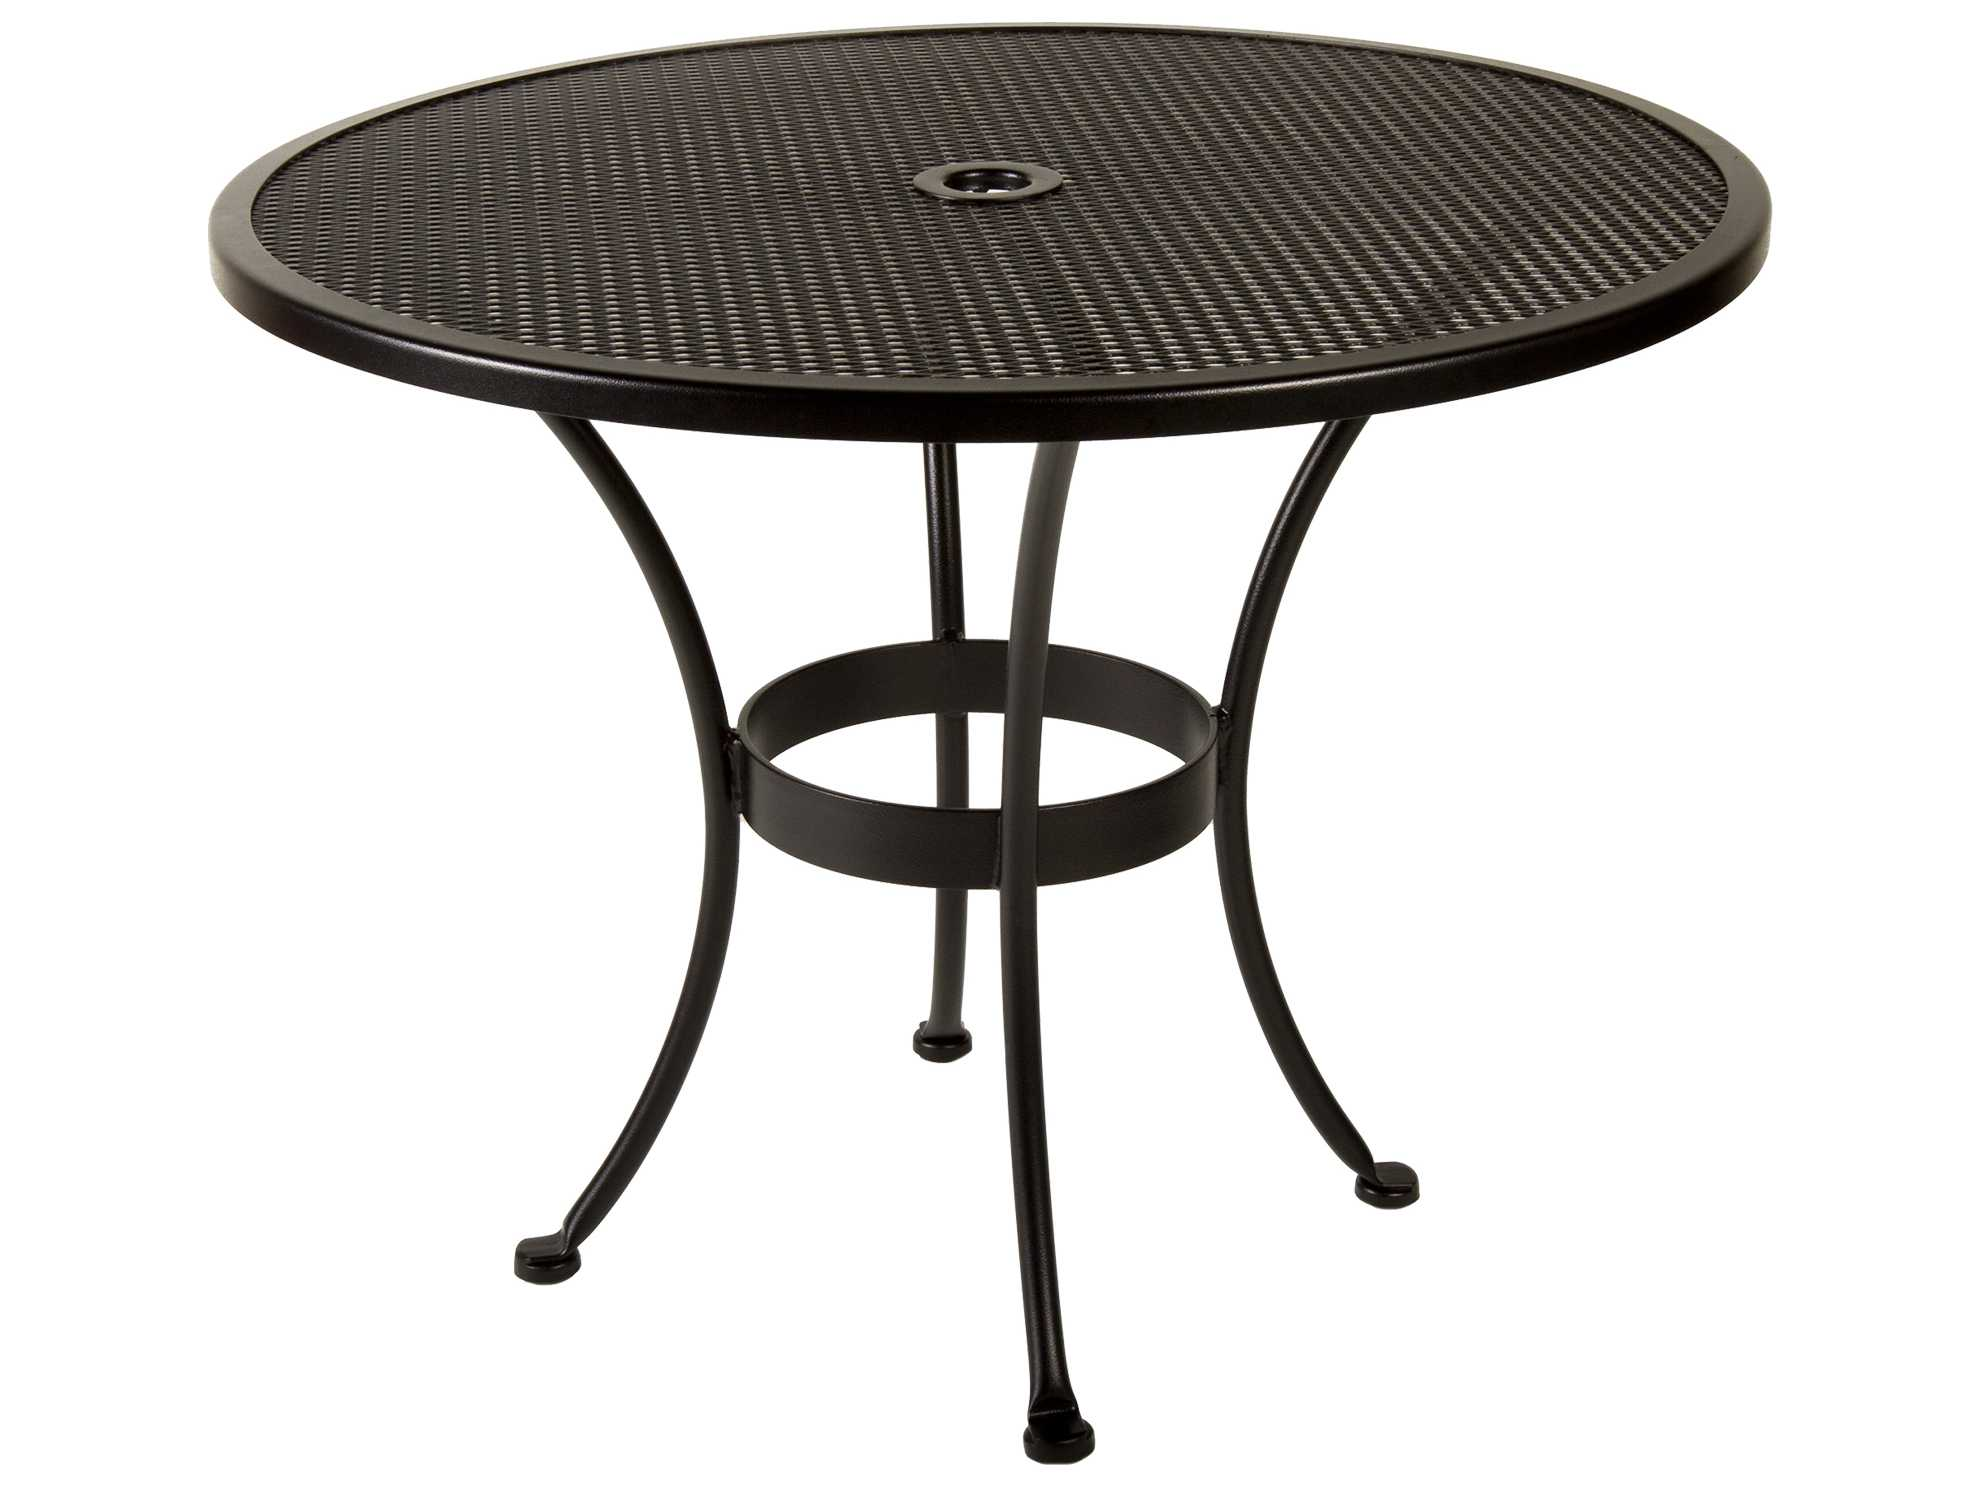 Ow Lee Mesh Wrought Iron 36 Round Dining Table With